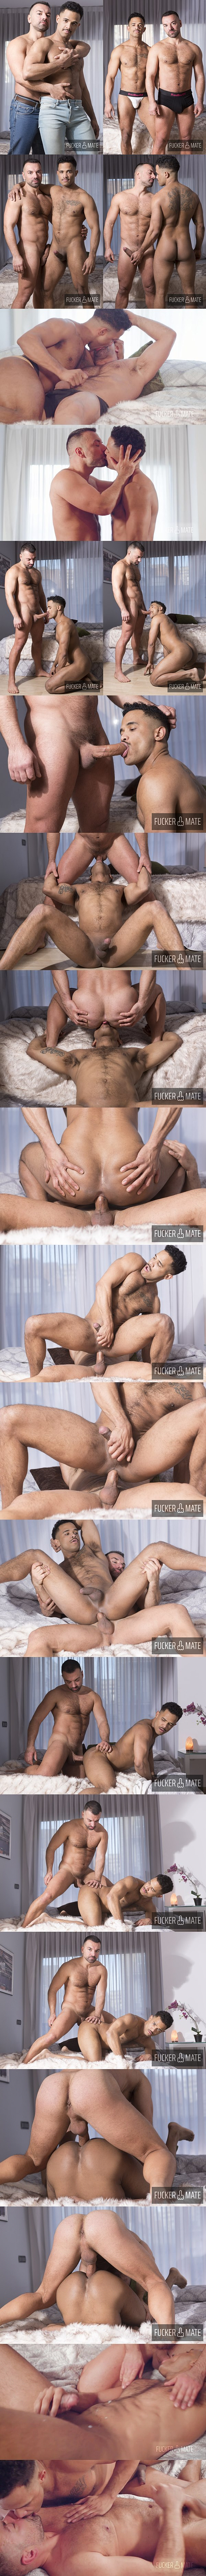 Fuckermate - muscular Spanish stud Oliver Marinho (aka Frederic Duris) barebacks black muscle jock Jonas Brown in several positions before they blow their white jizz 02